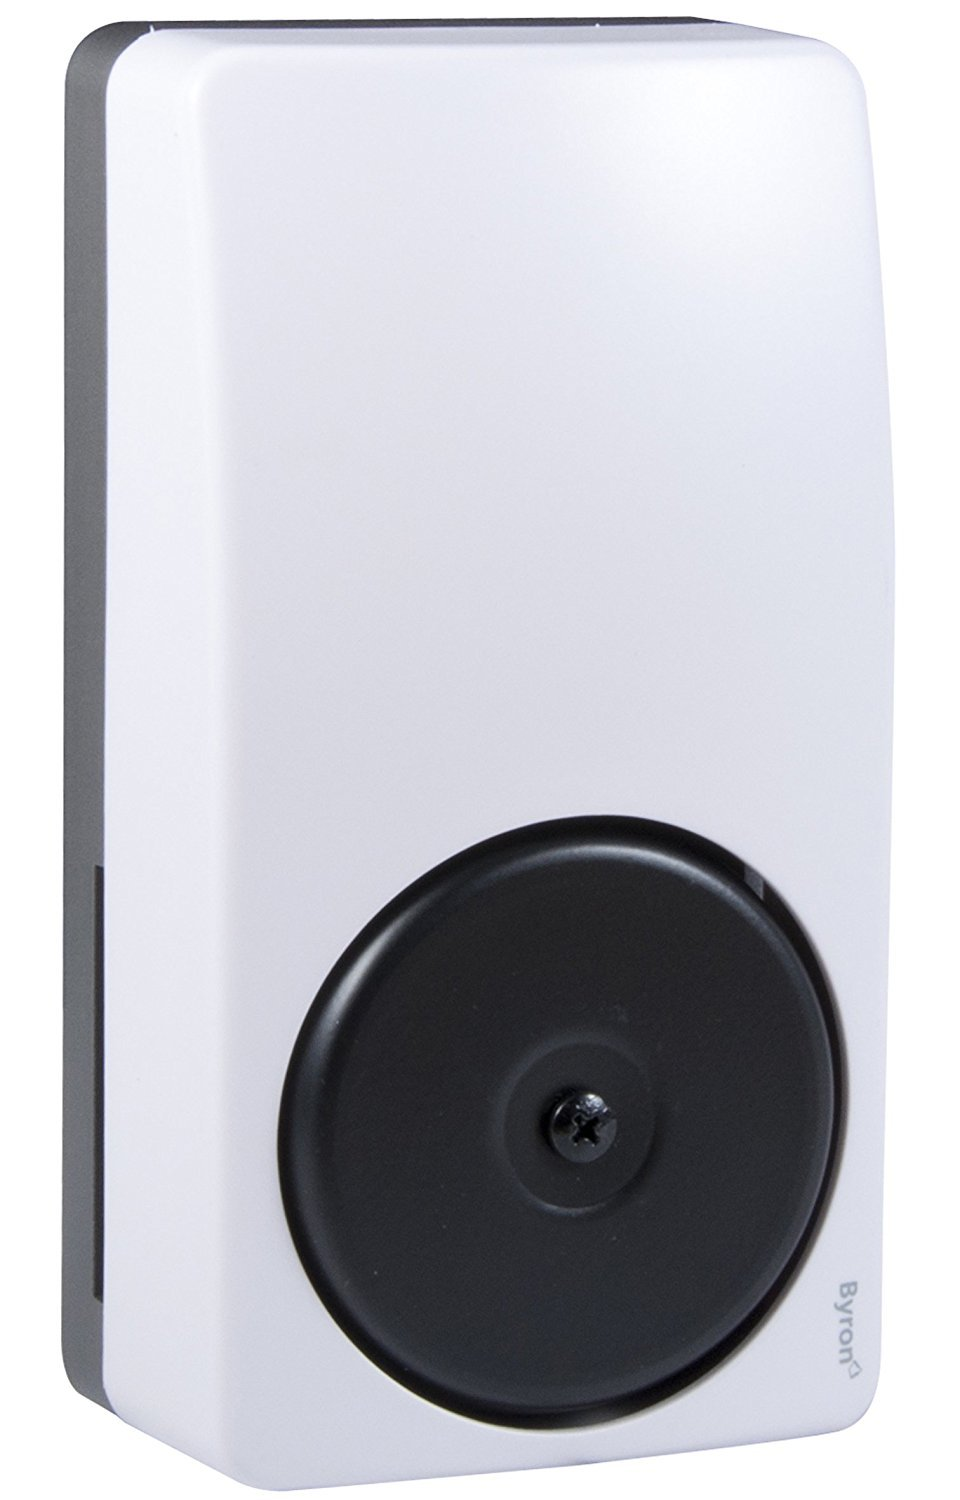 Byron 1217 wired doorbell kit – Classic sound – White BYR1217